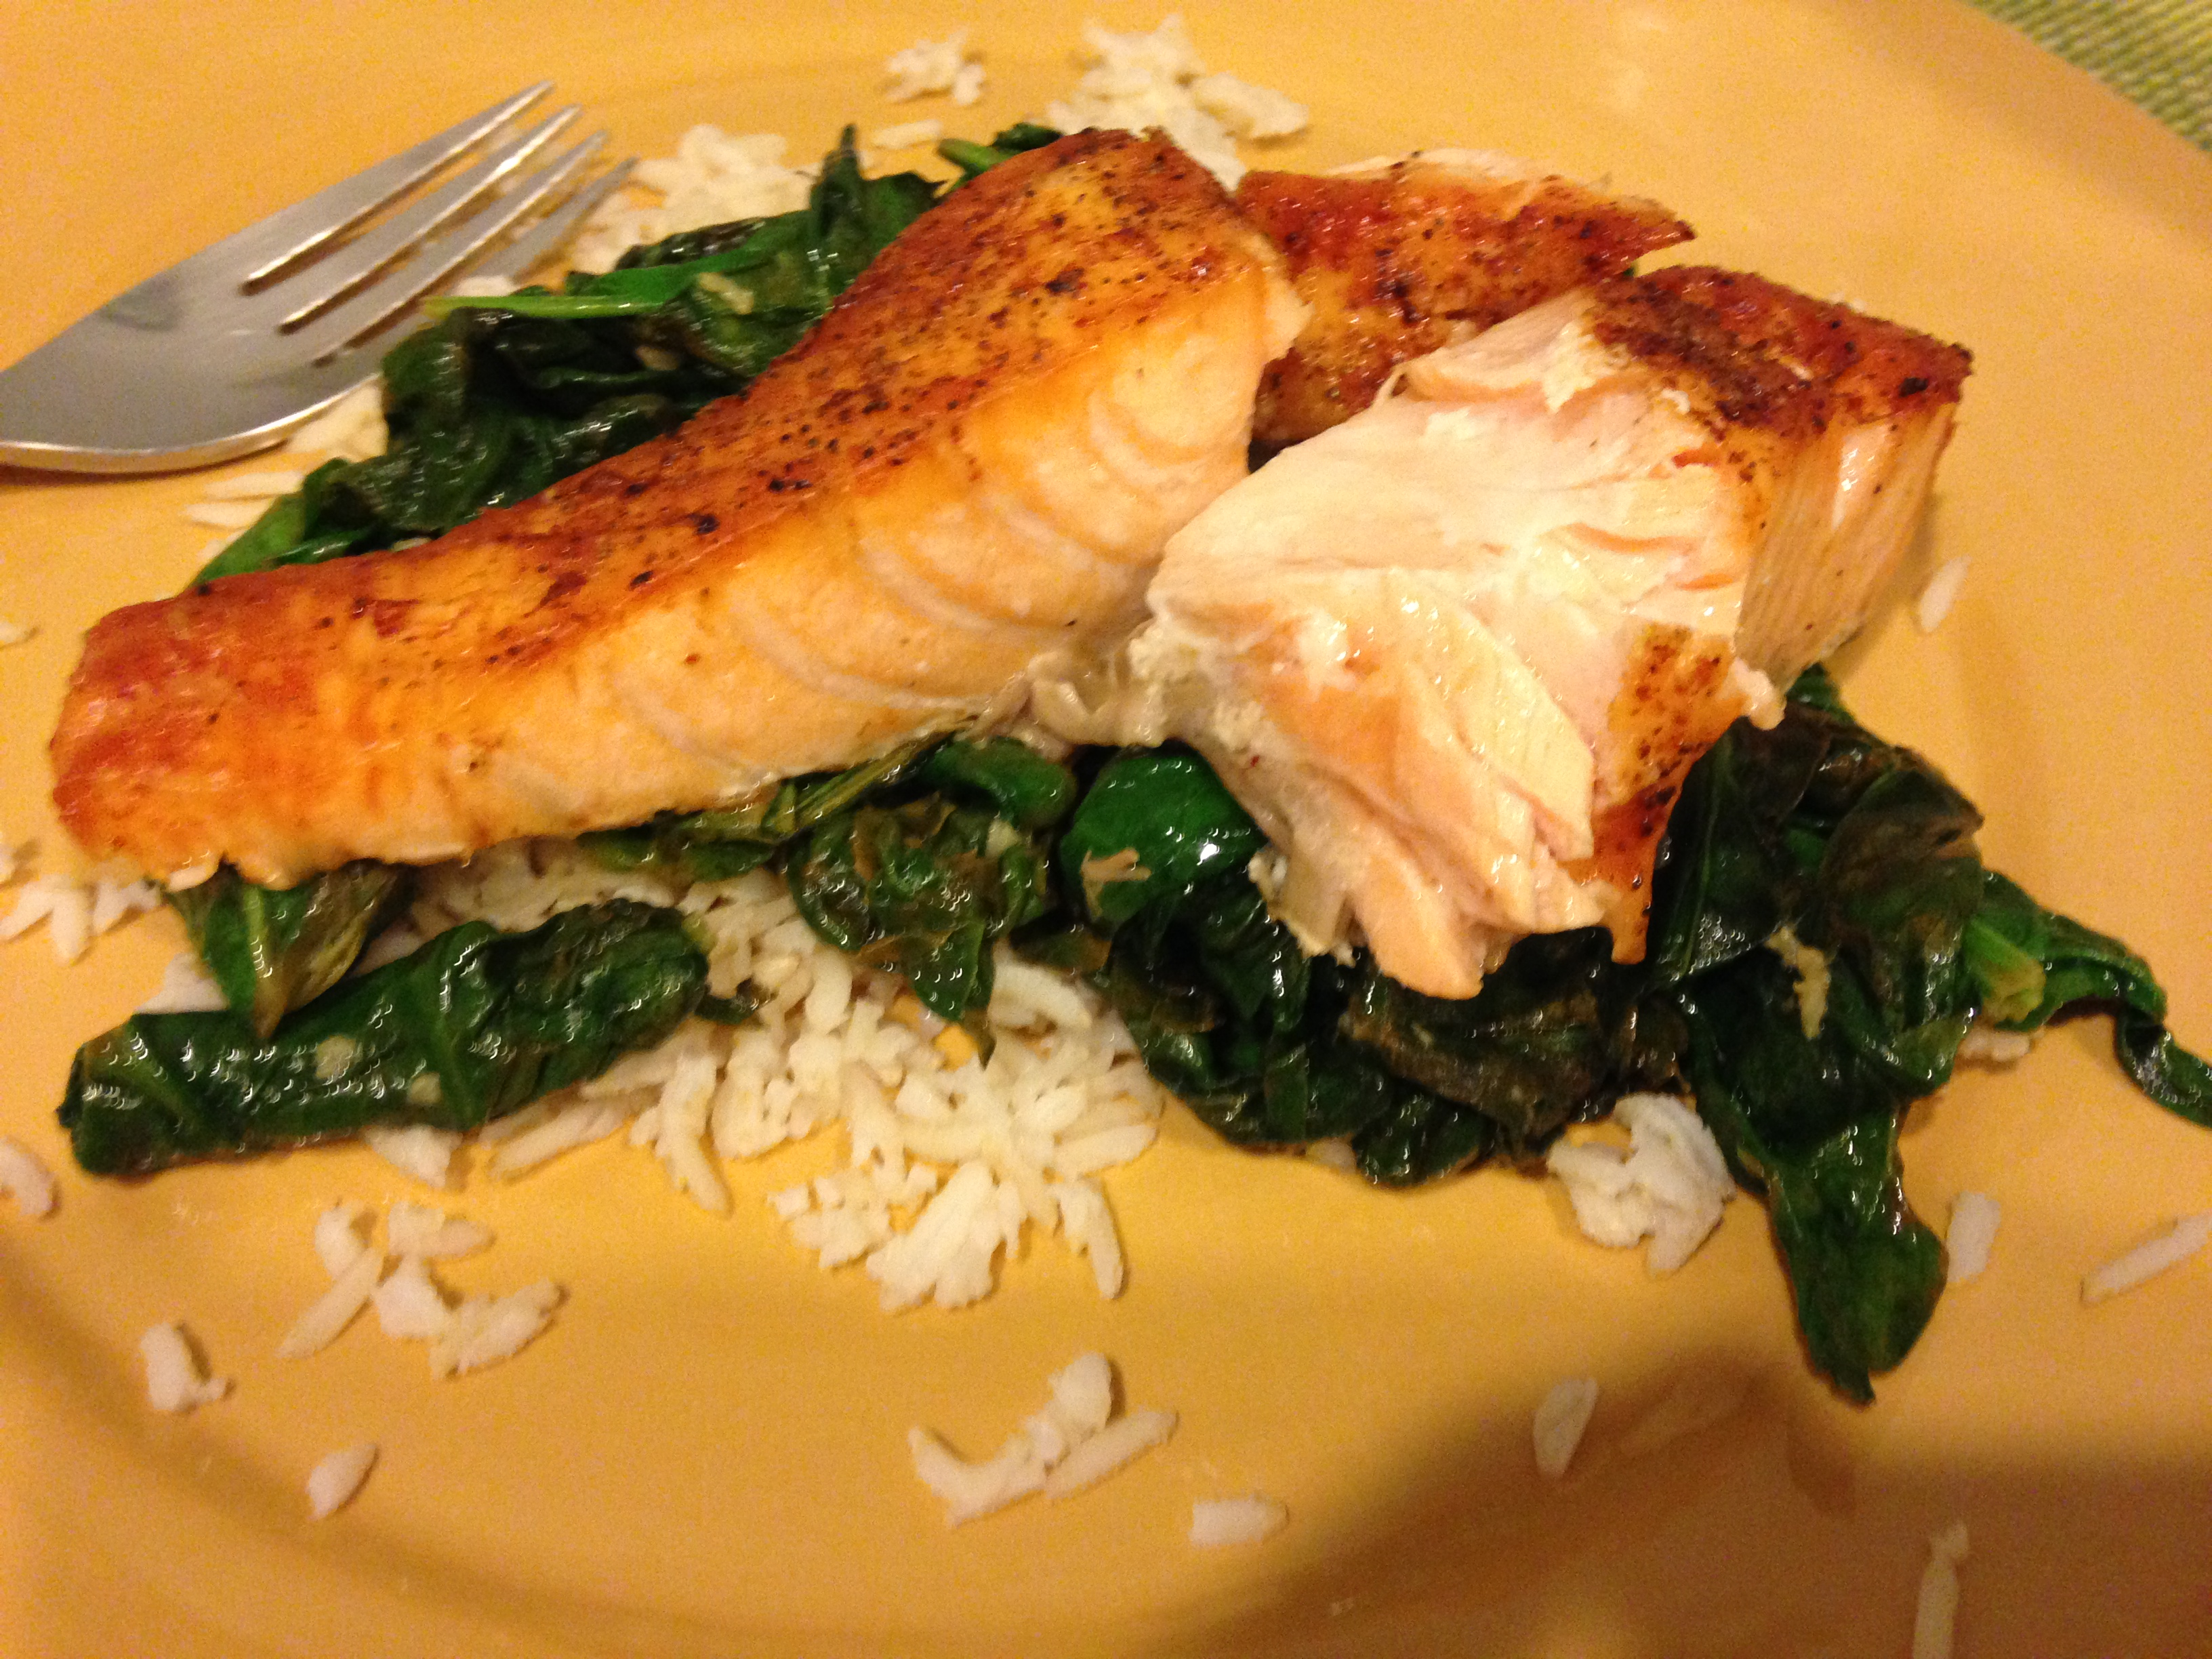 Cook it quick salmon with spinach a joint account salmon with spinach and brown rice salmon i buy mine in individual portions but you can cook larger pieces to feed many the same way brown rice ccuart Gallery